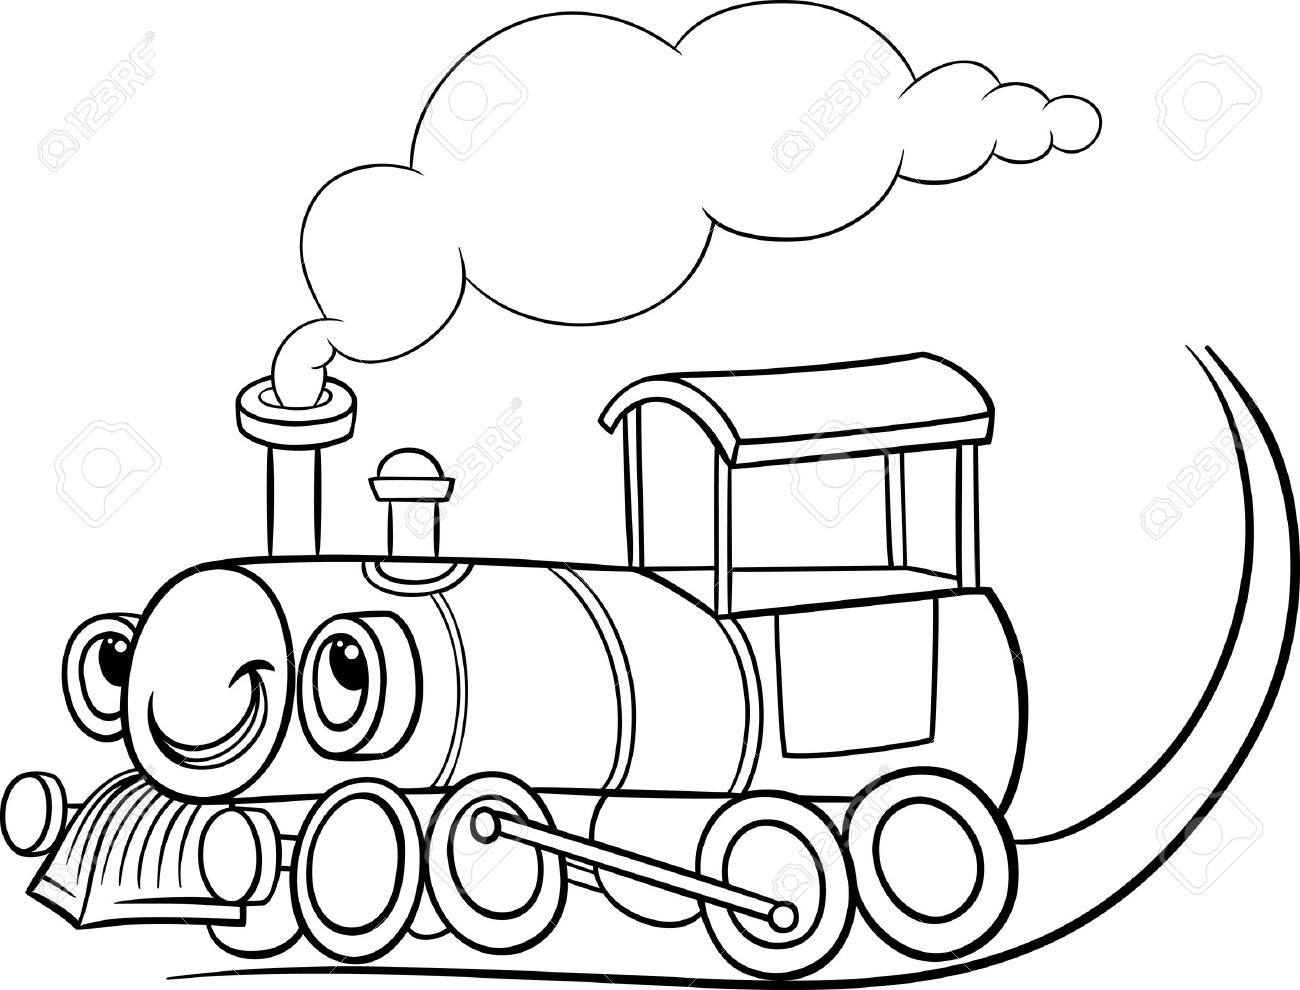 black and white cartoon illustration of funny steam engine